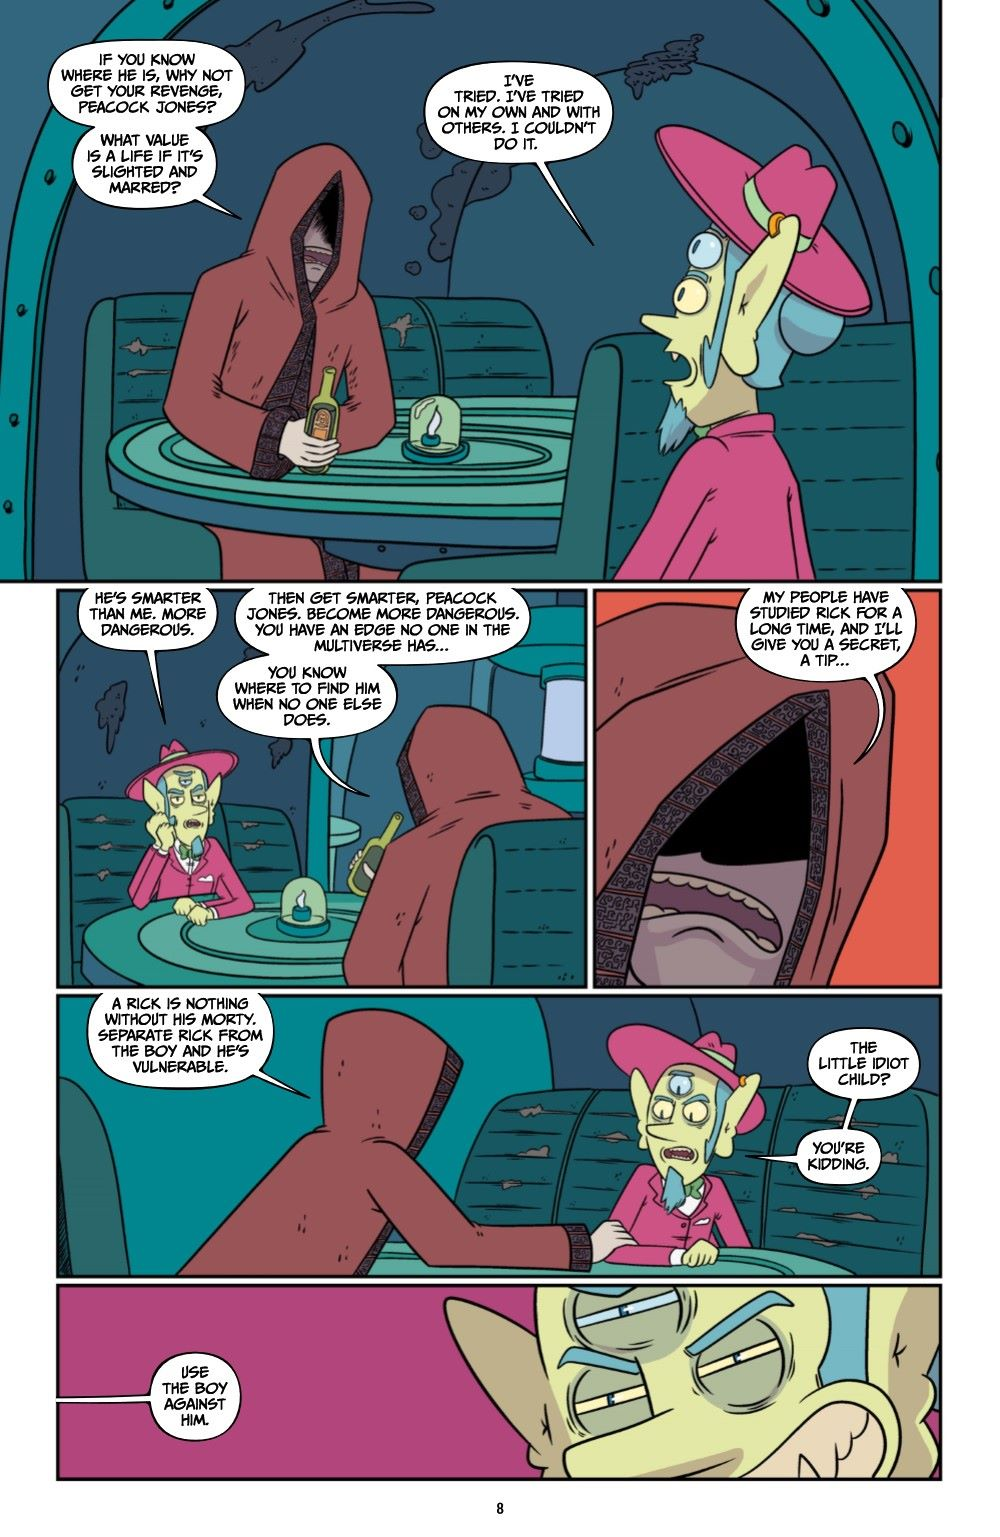 RICKMORTY-V12-TPB-REFERENCE-009 ComicList Previews: RICK AND MORTY VOLUME 12 TP